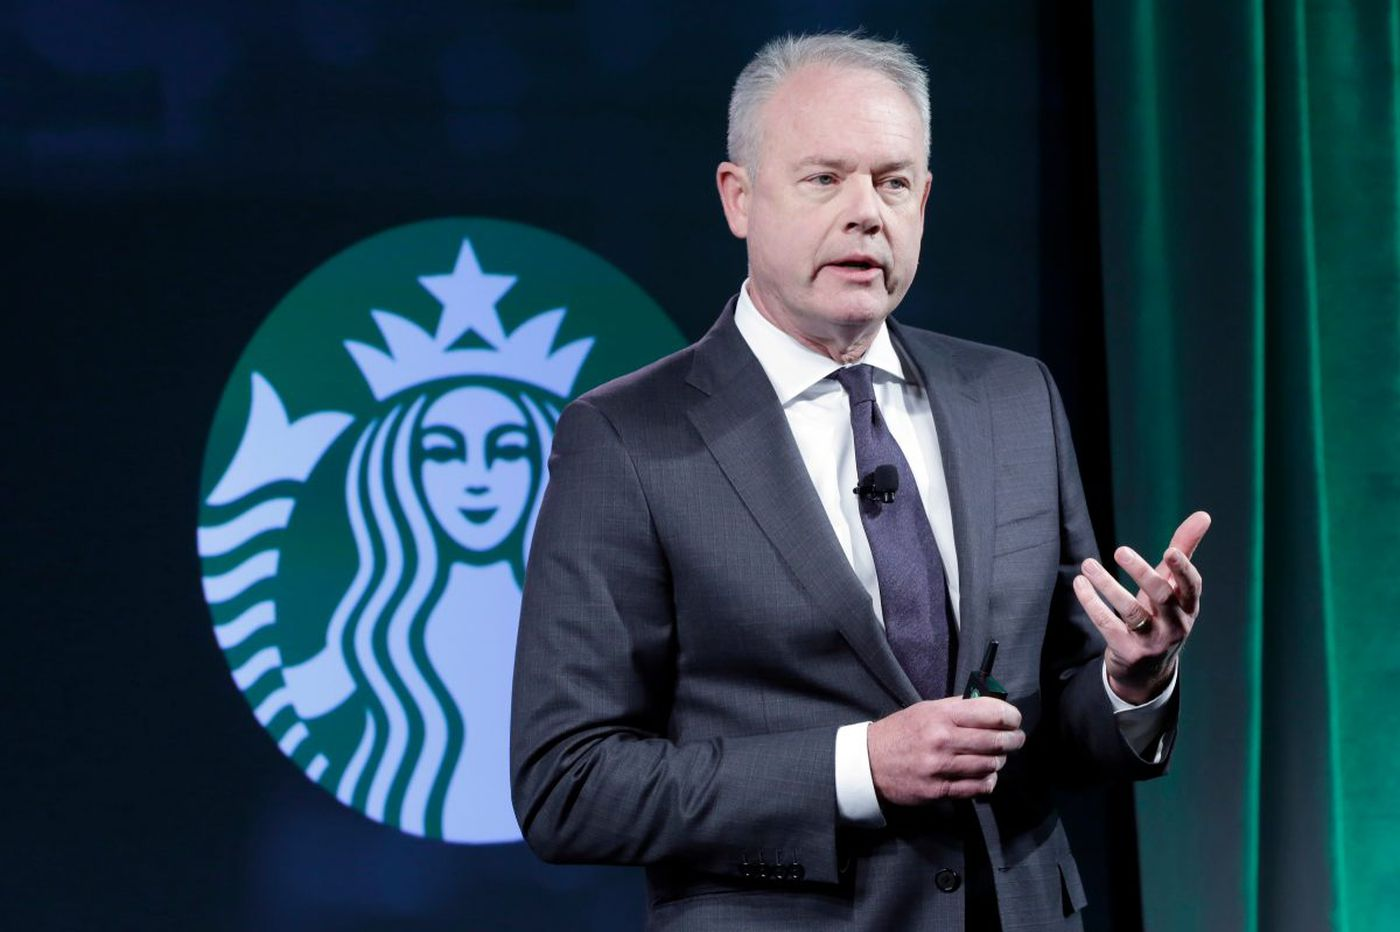 Is Starbucks closing for a day really going to fix racial bias? | Opinion